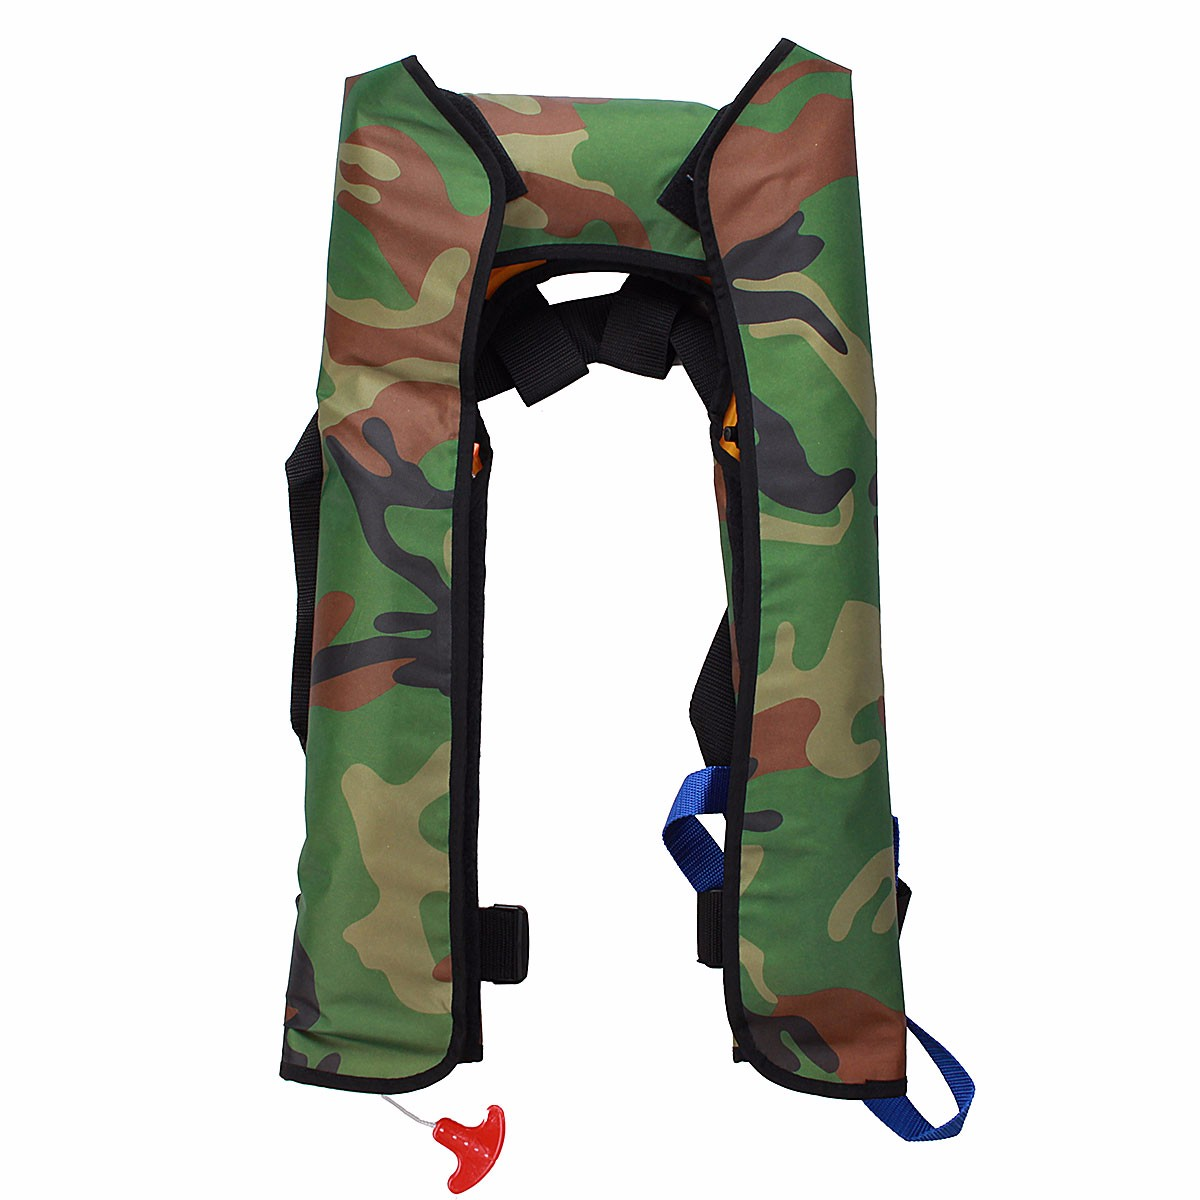 Hot selling manual and automatic inflation Inflatable life jackets self inflating life vest life tube for 16KG camouflage color(China (Mainland))